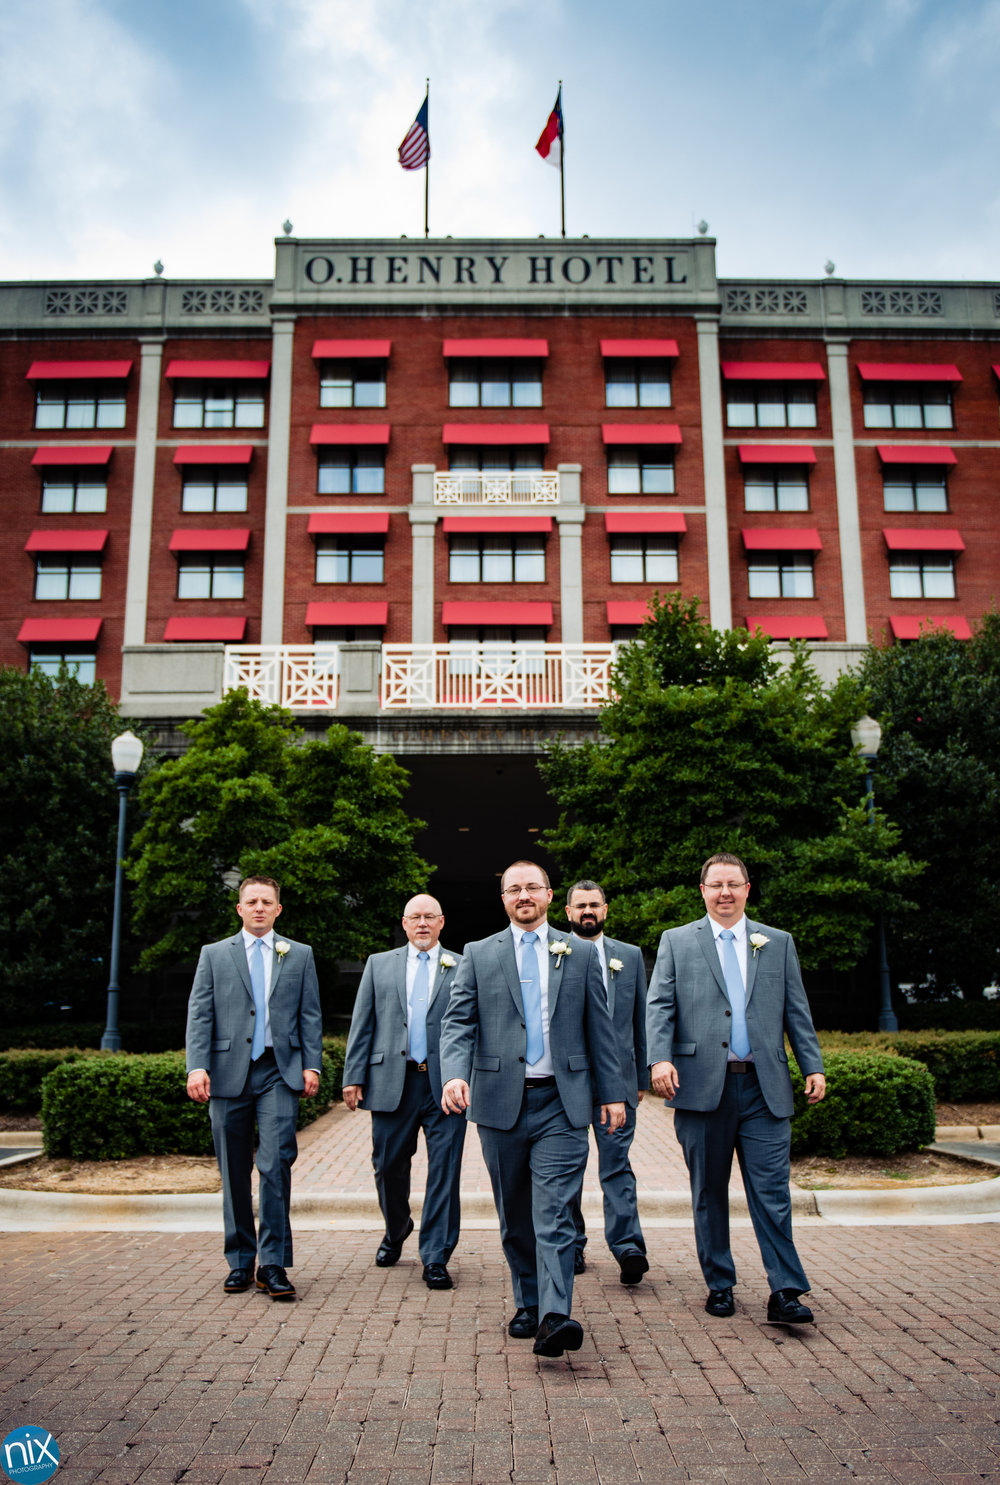 groom_and_groomsmen_ohenry_hotel.jpg